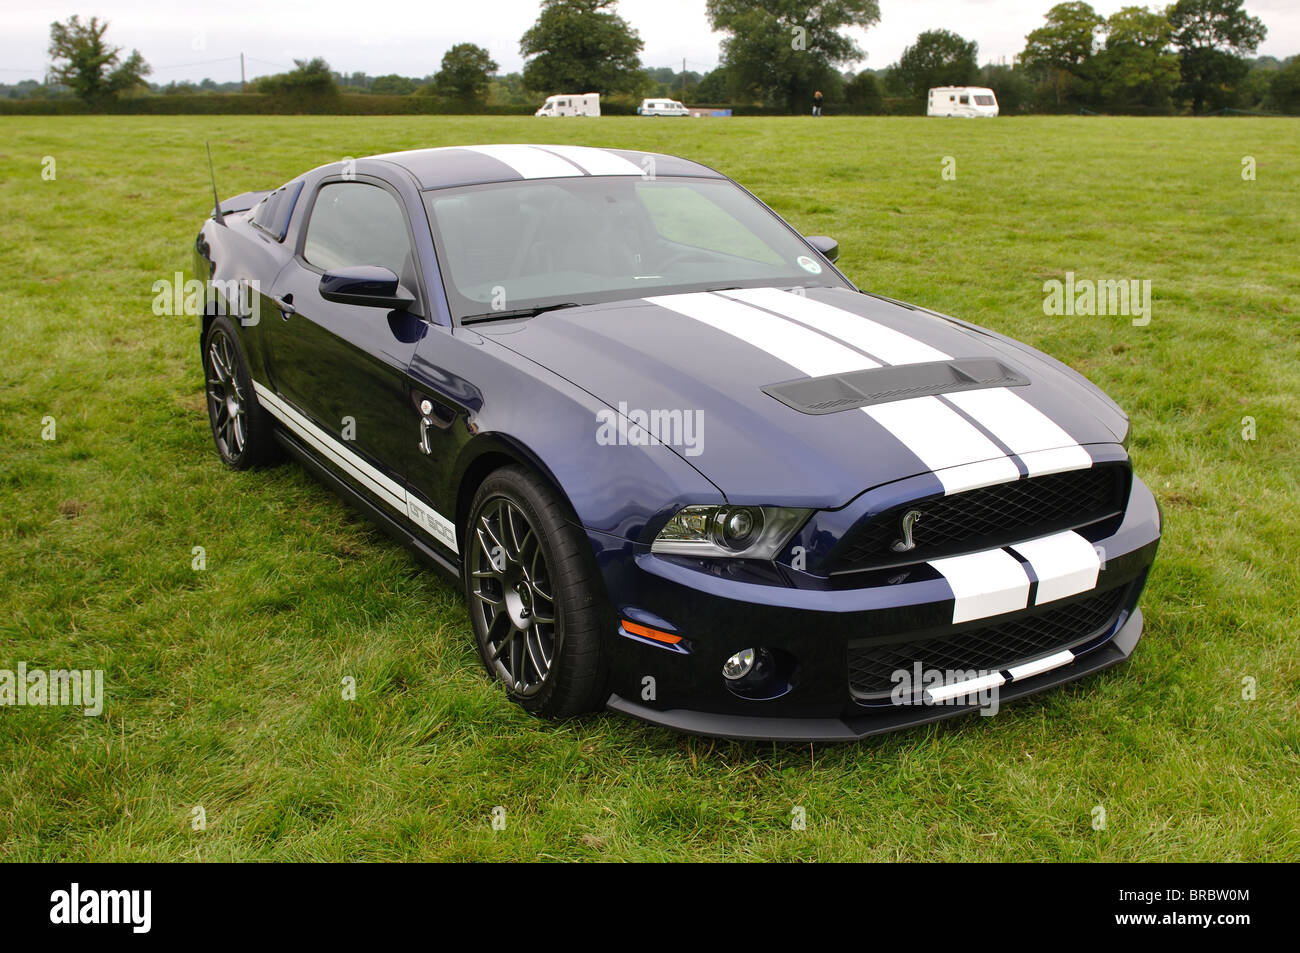 Ford Shelby GT500 Cobra   Stock Image